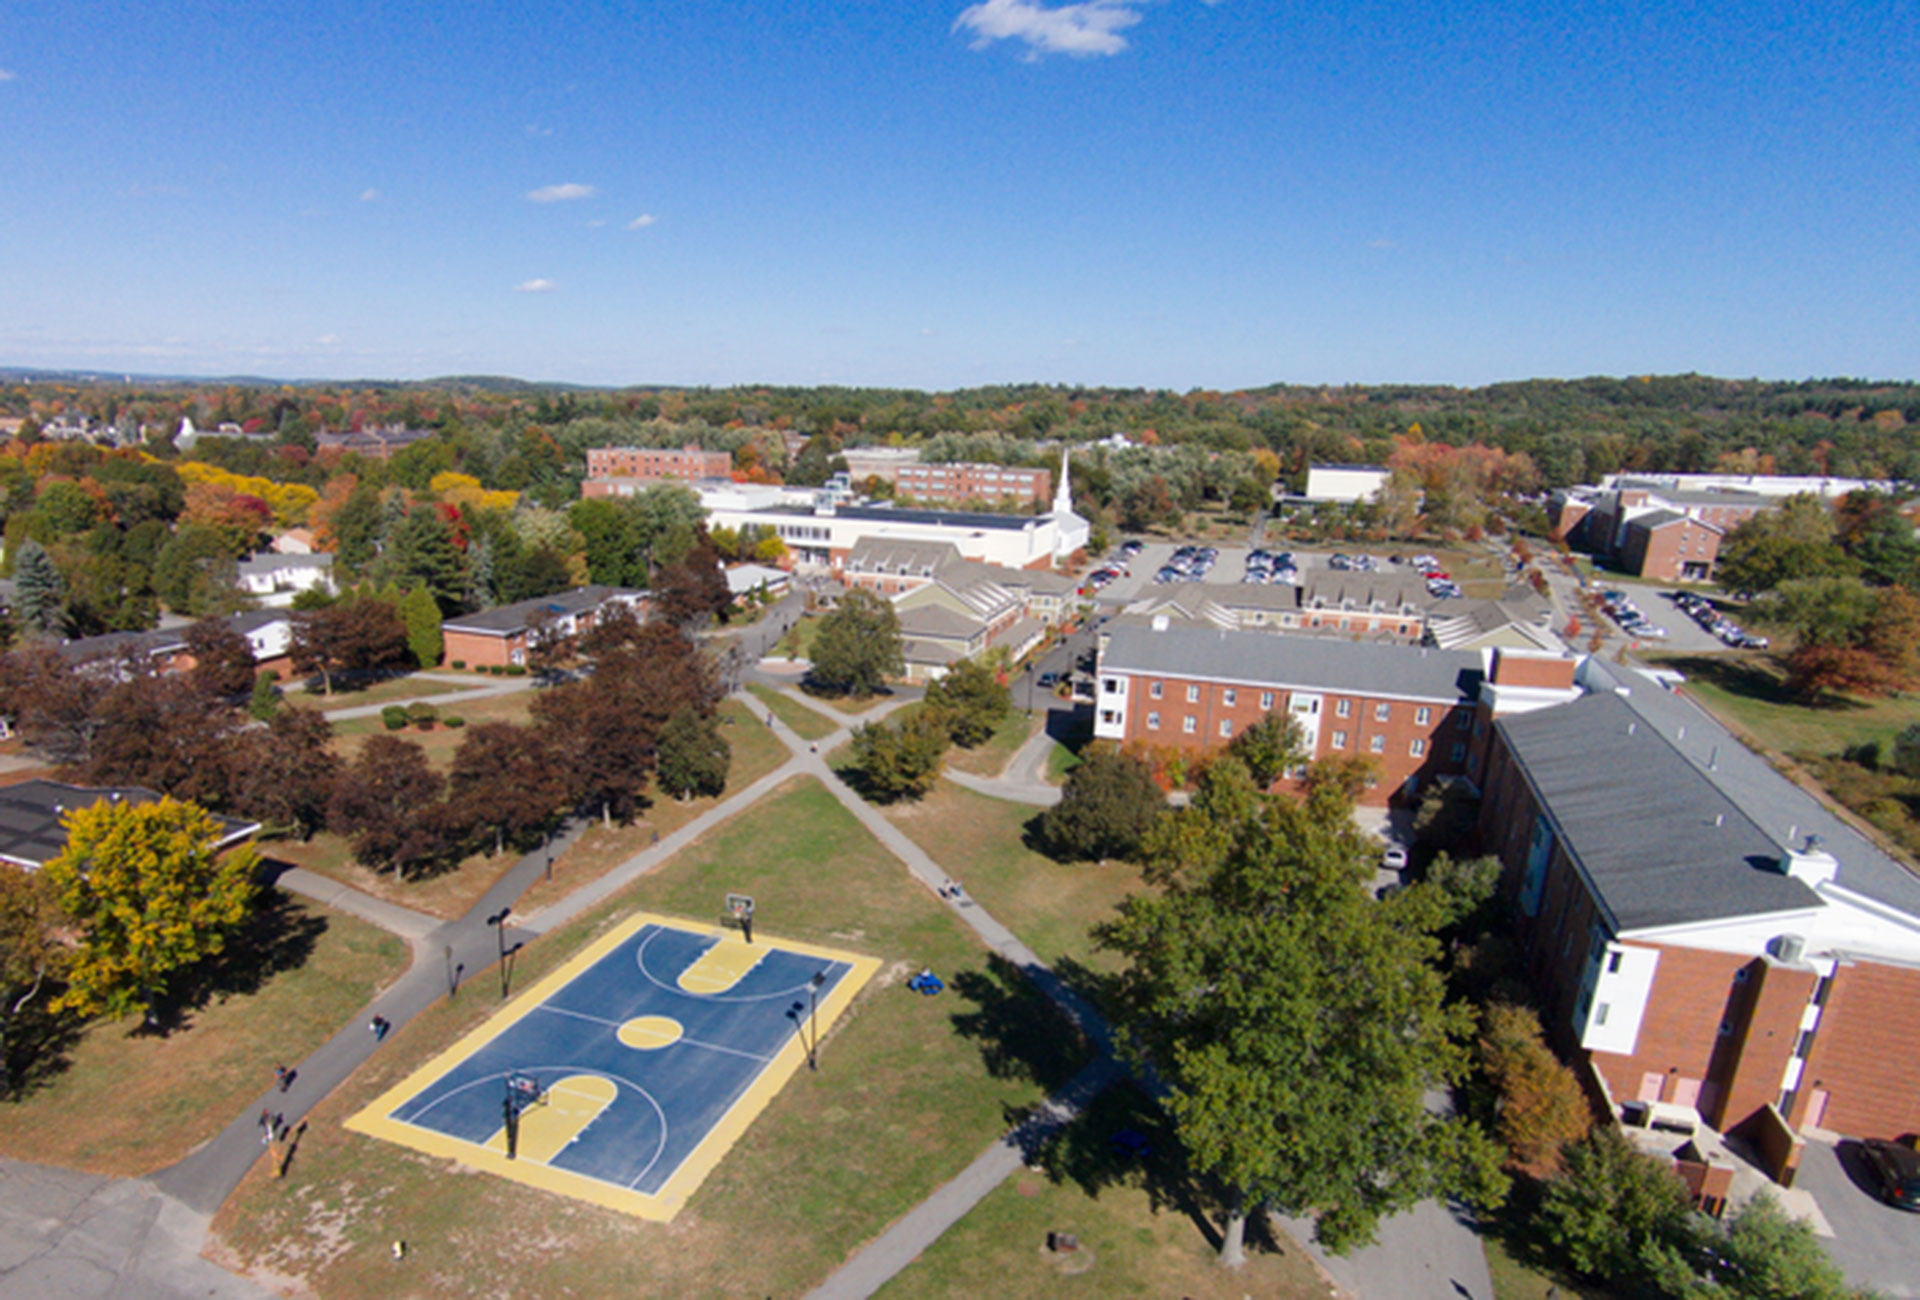 Arial view of Merrimack Campus